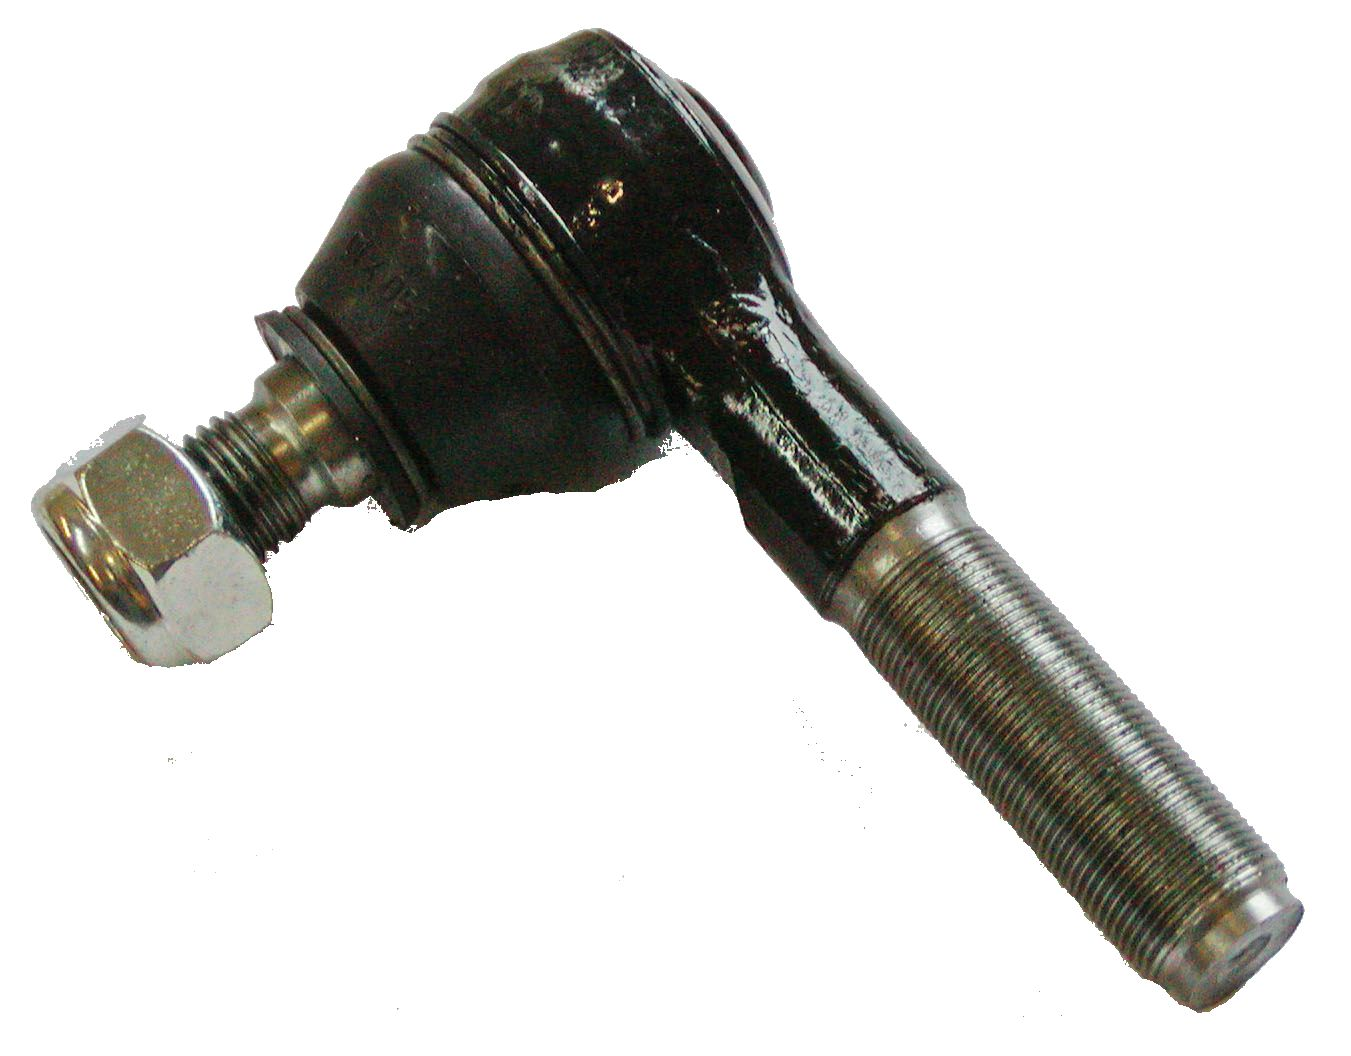 ST22-014 - Tie Rod End, Right